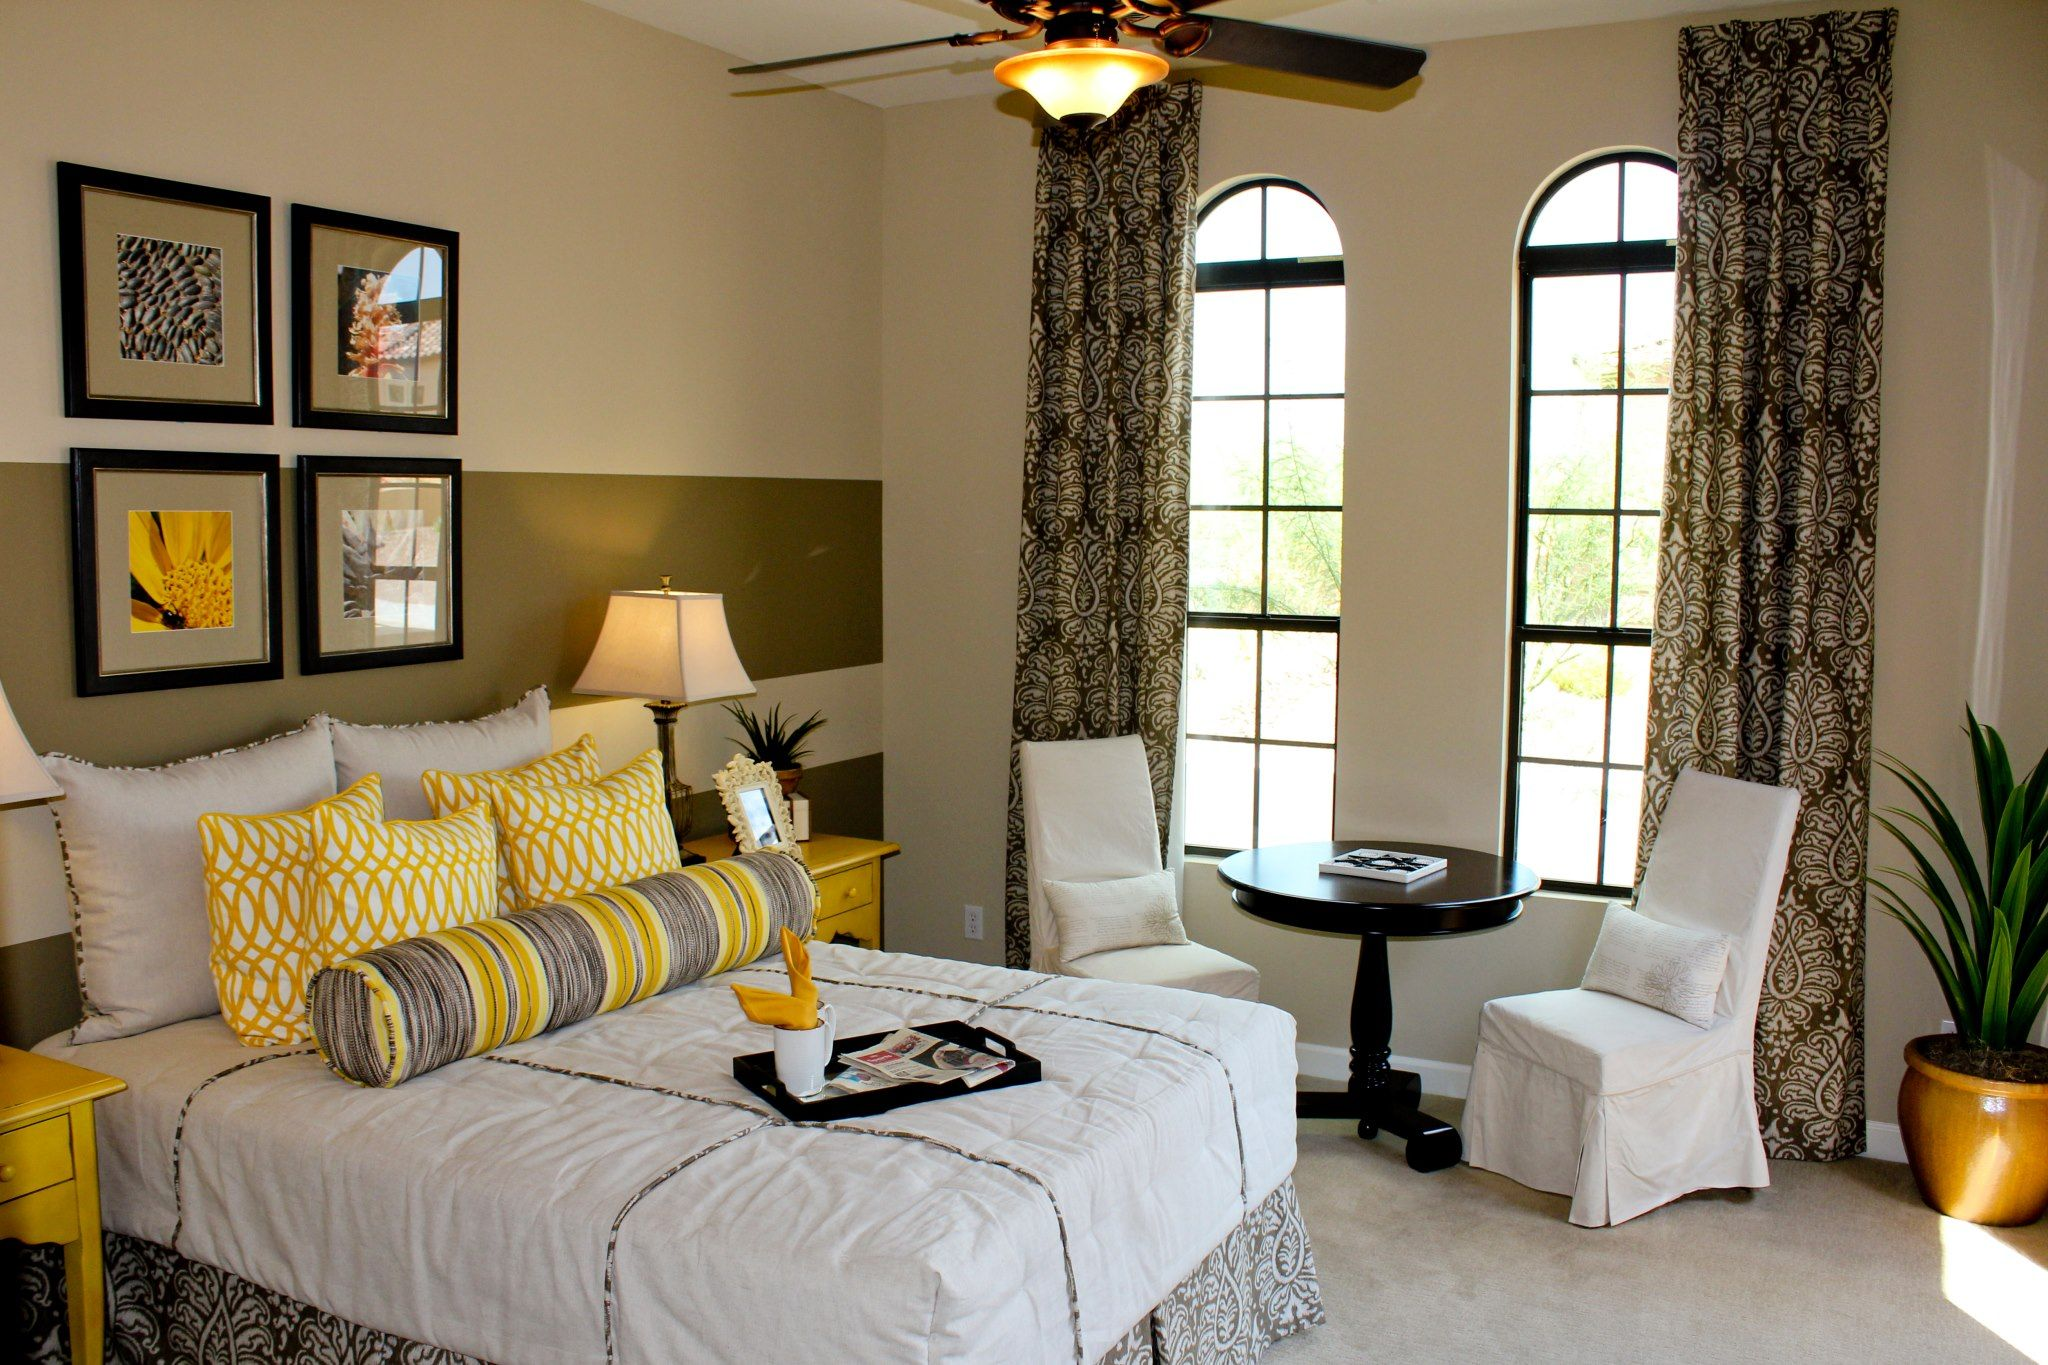 Yellow and grey | Guest bedroom, Home decor, Home